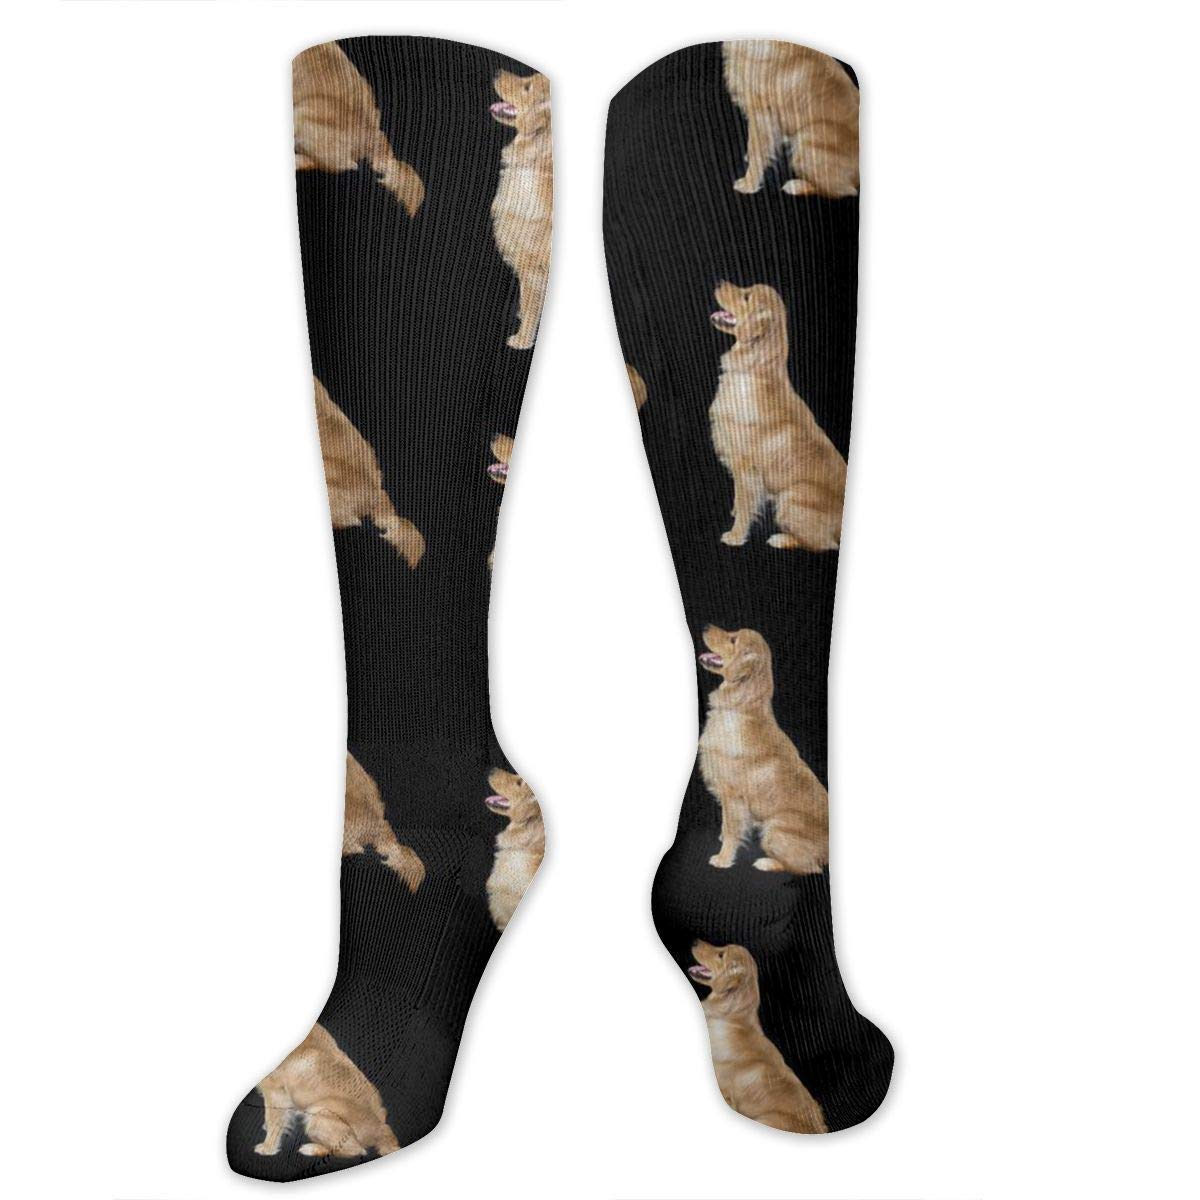 Golden Retriever Dogs Mens//Womens Sensitive Feet Wide Fit Crew Socks and Cotton Crew Athletic Sock